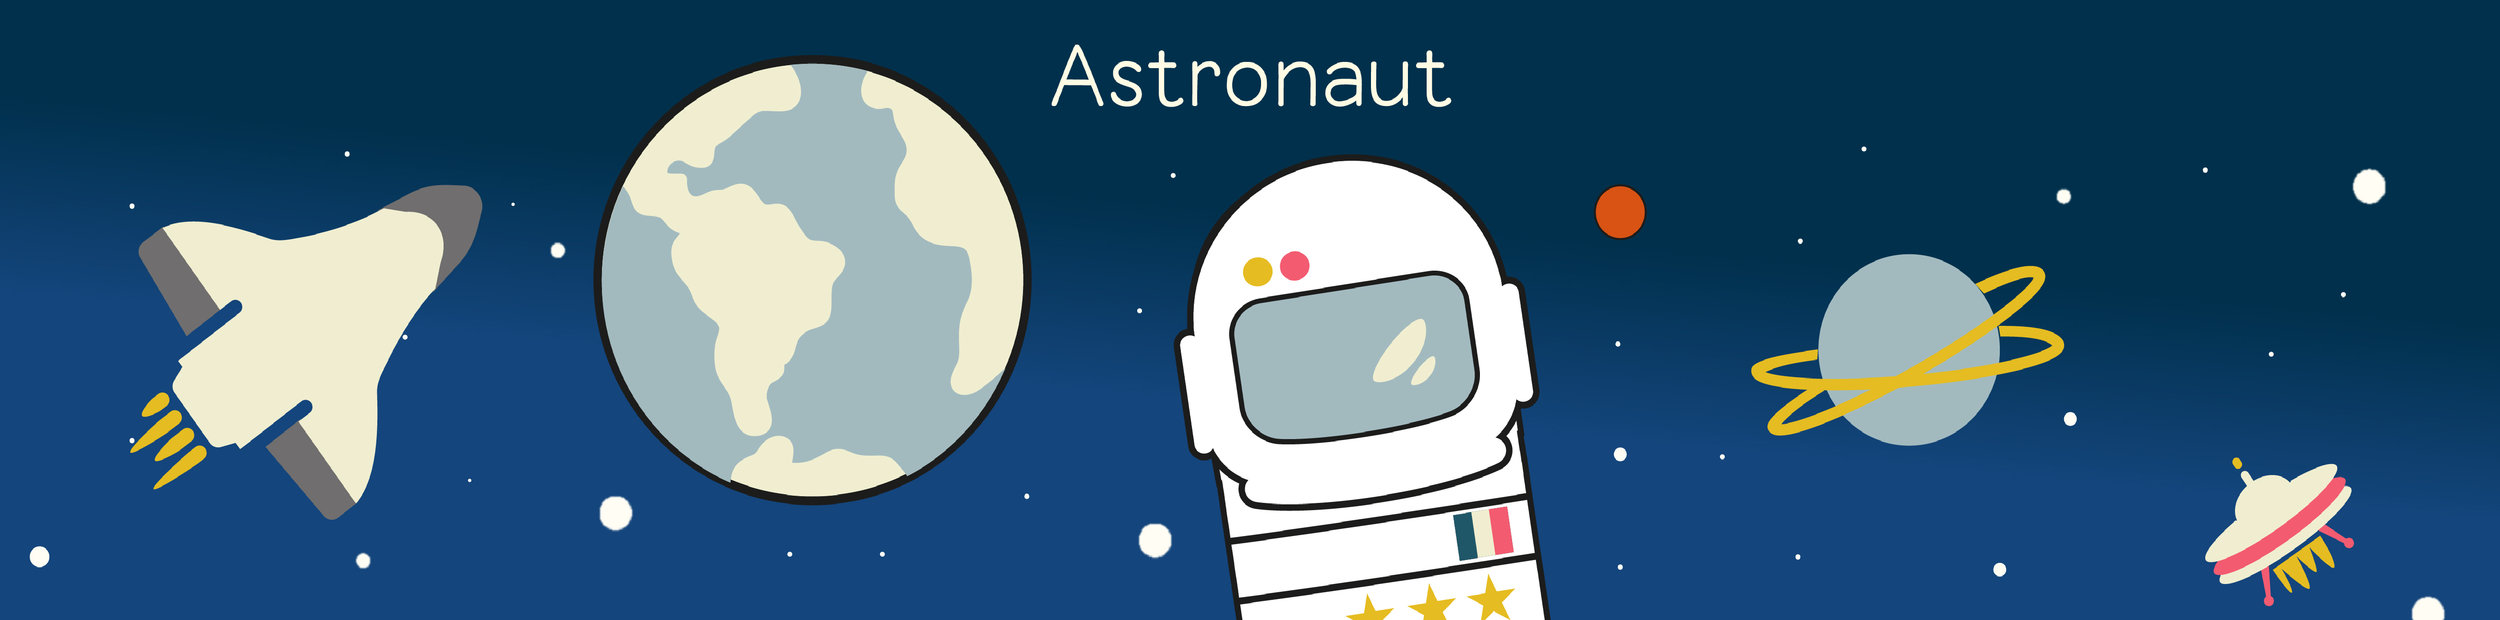 banner-astronaut.png